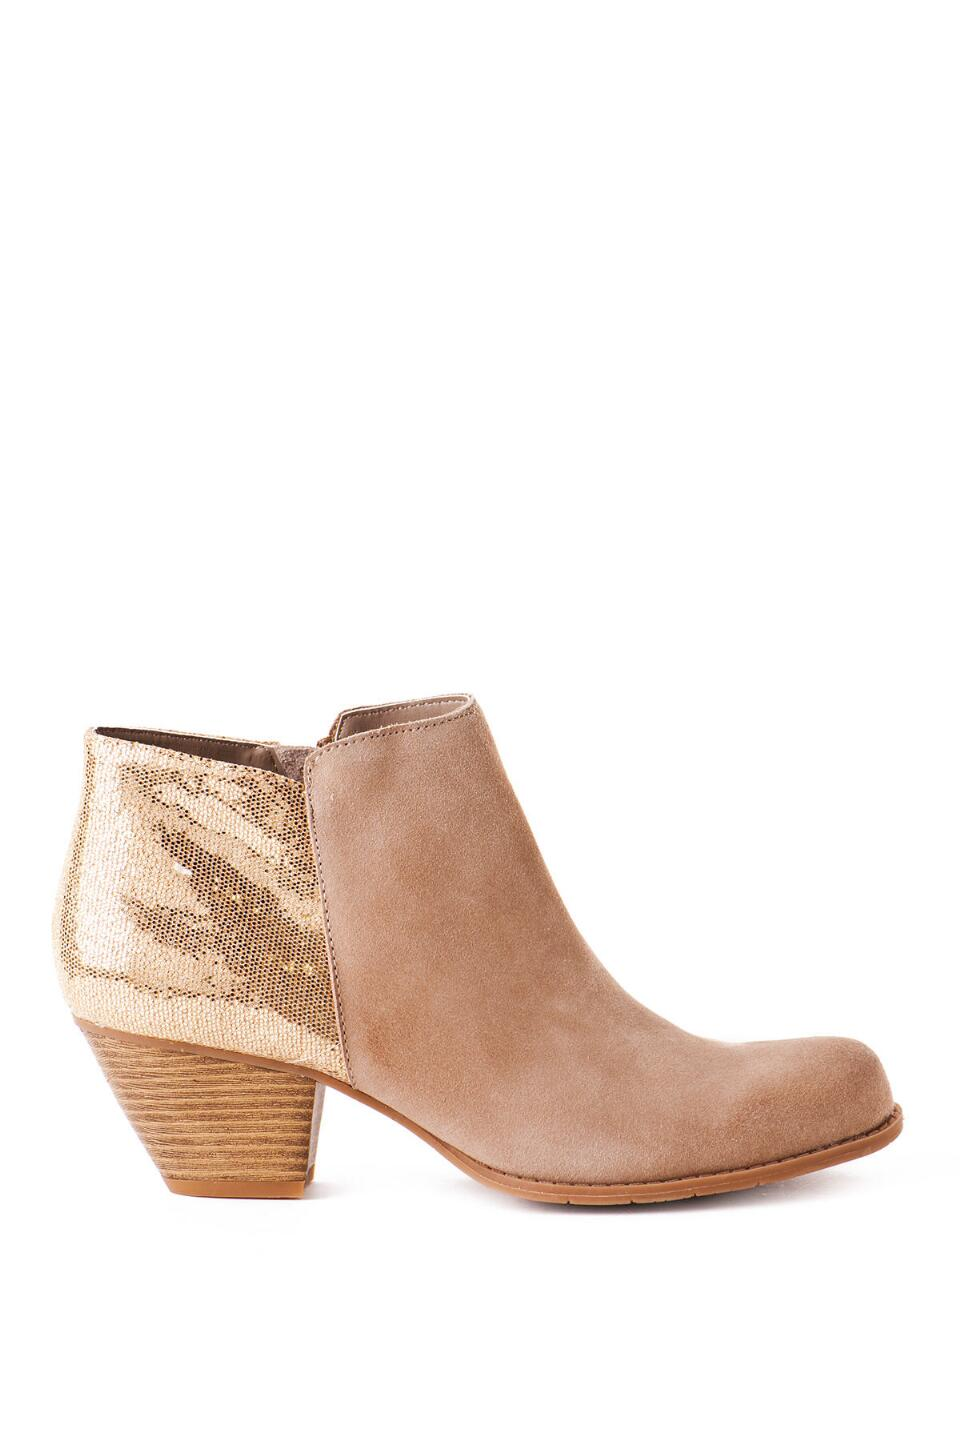 BC Footwear Shoes, Eager Beaver Metallic Bootie-  sand-clright